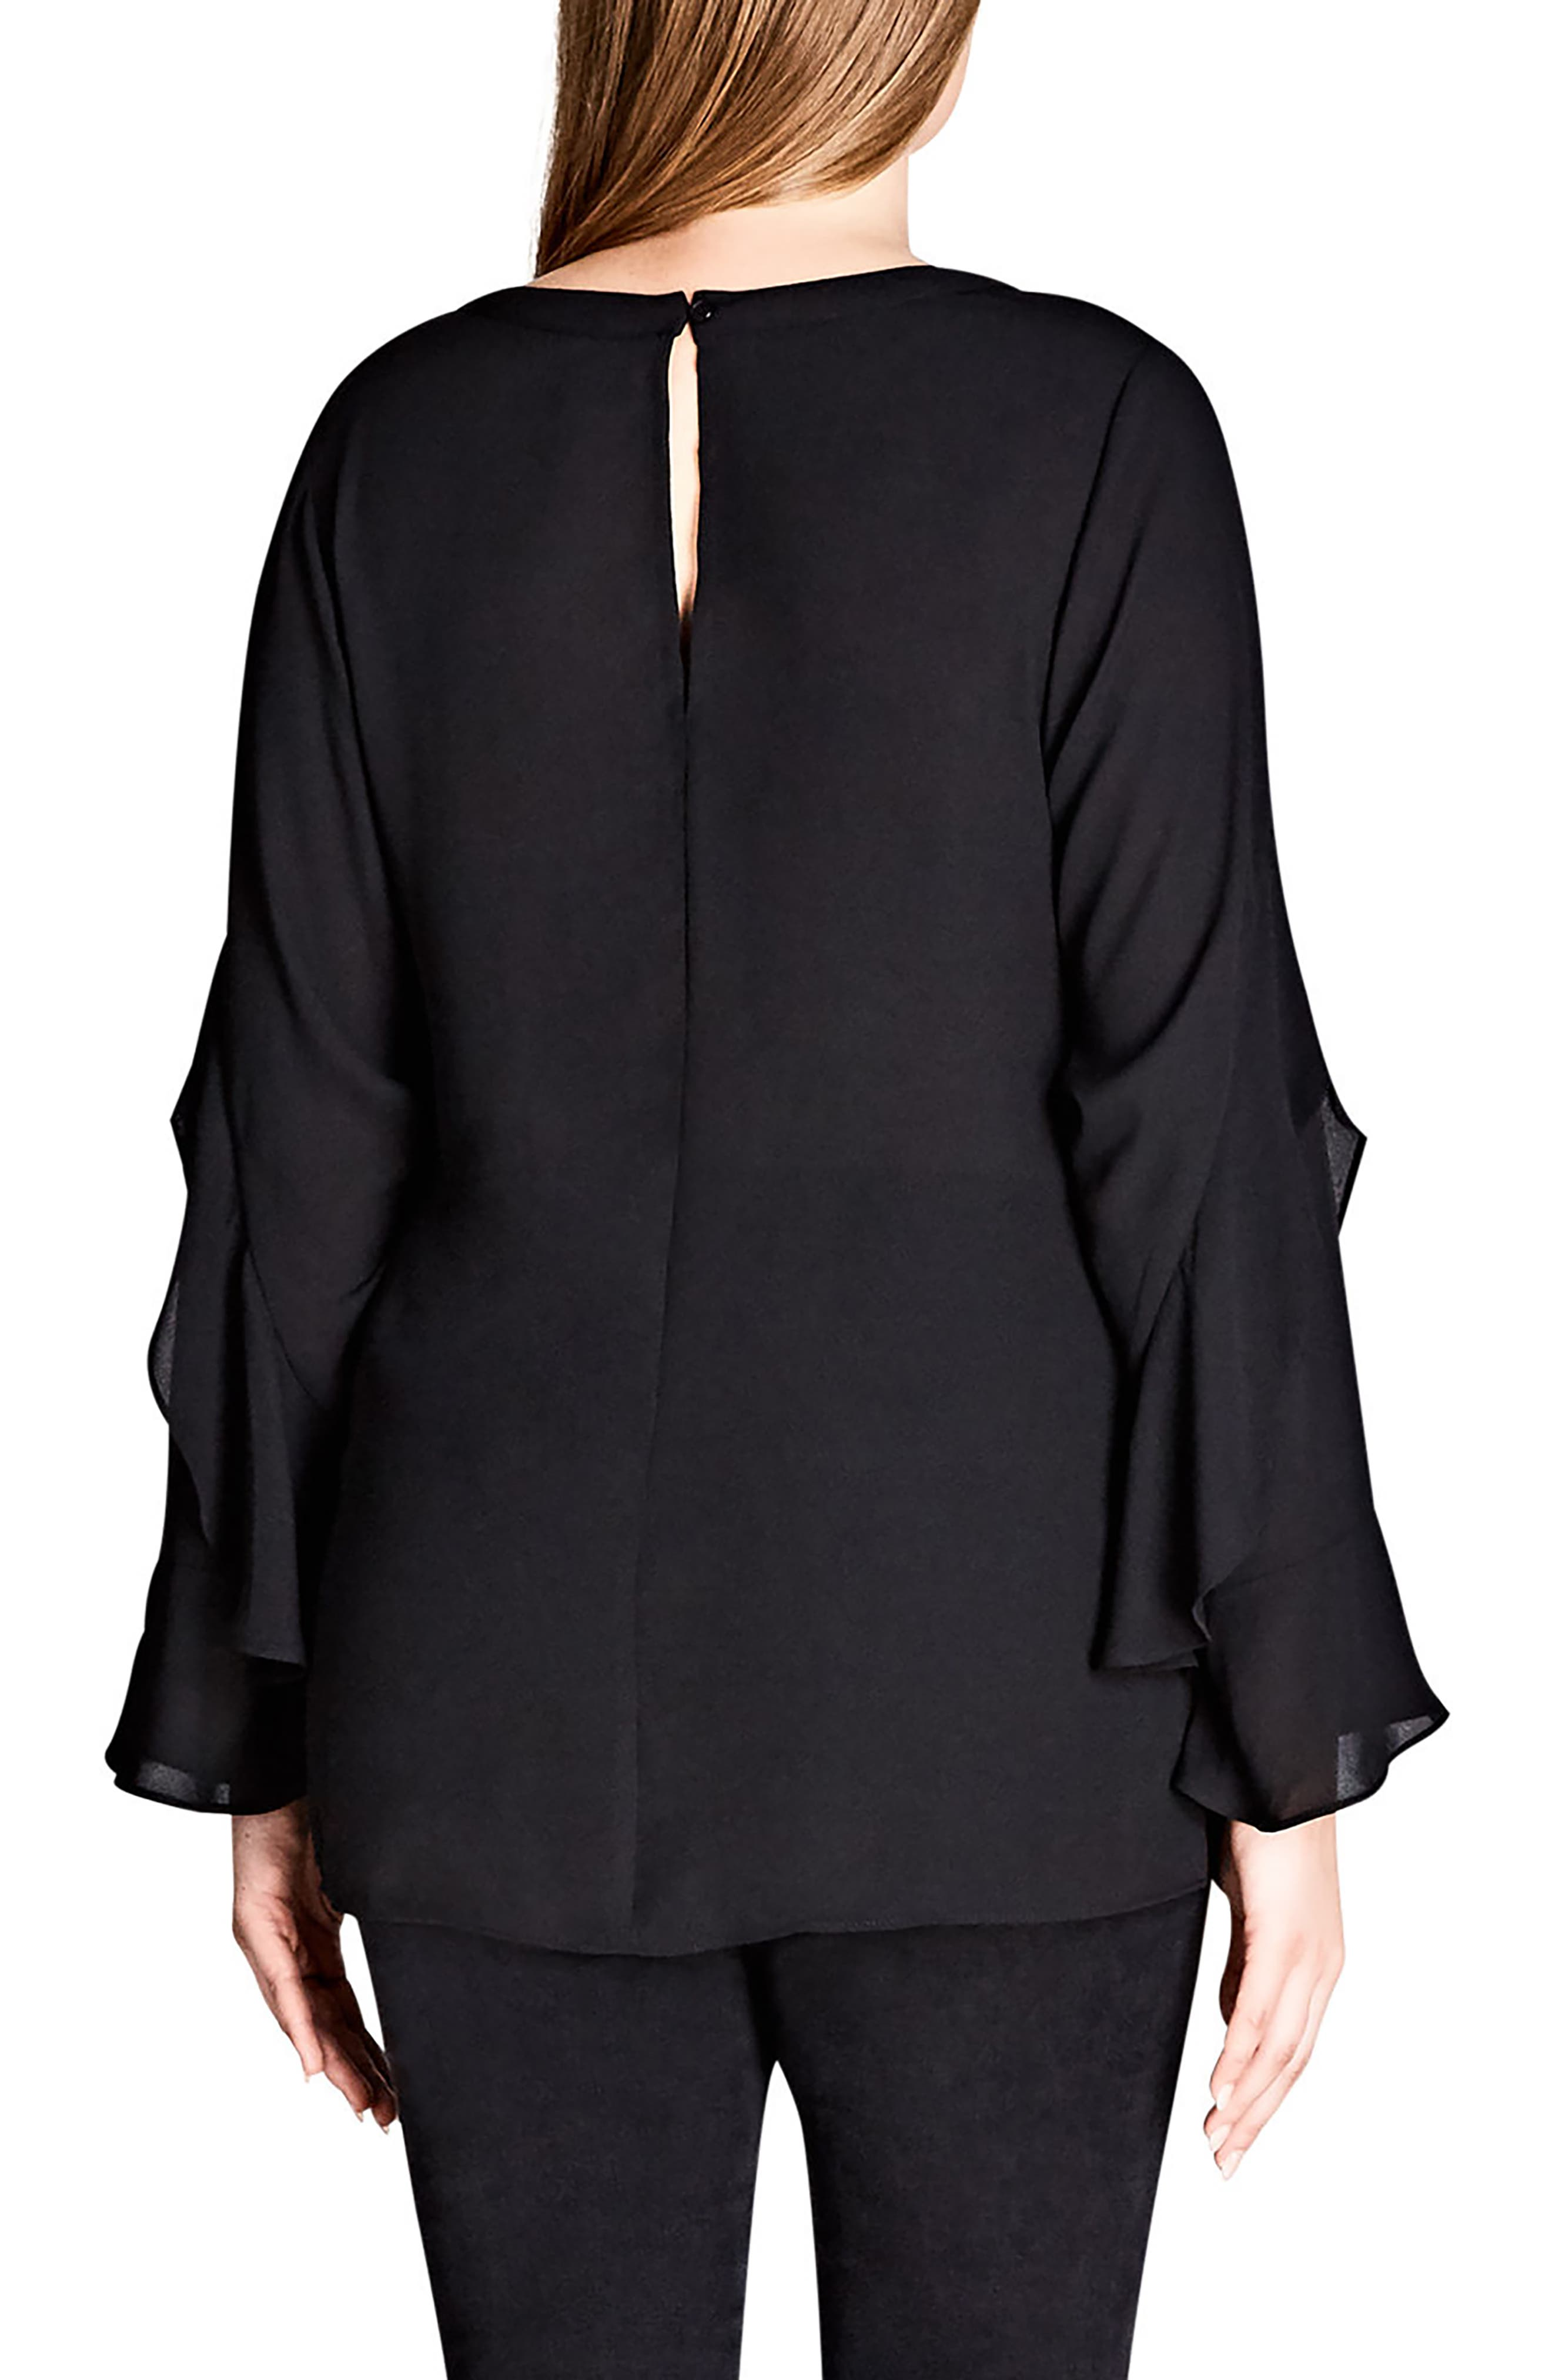 Frill Me Layered Sleeve Woven Top,                             Alternate thumbnail 2, color,                             Black